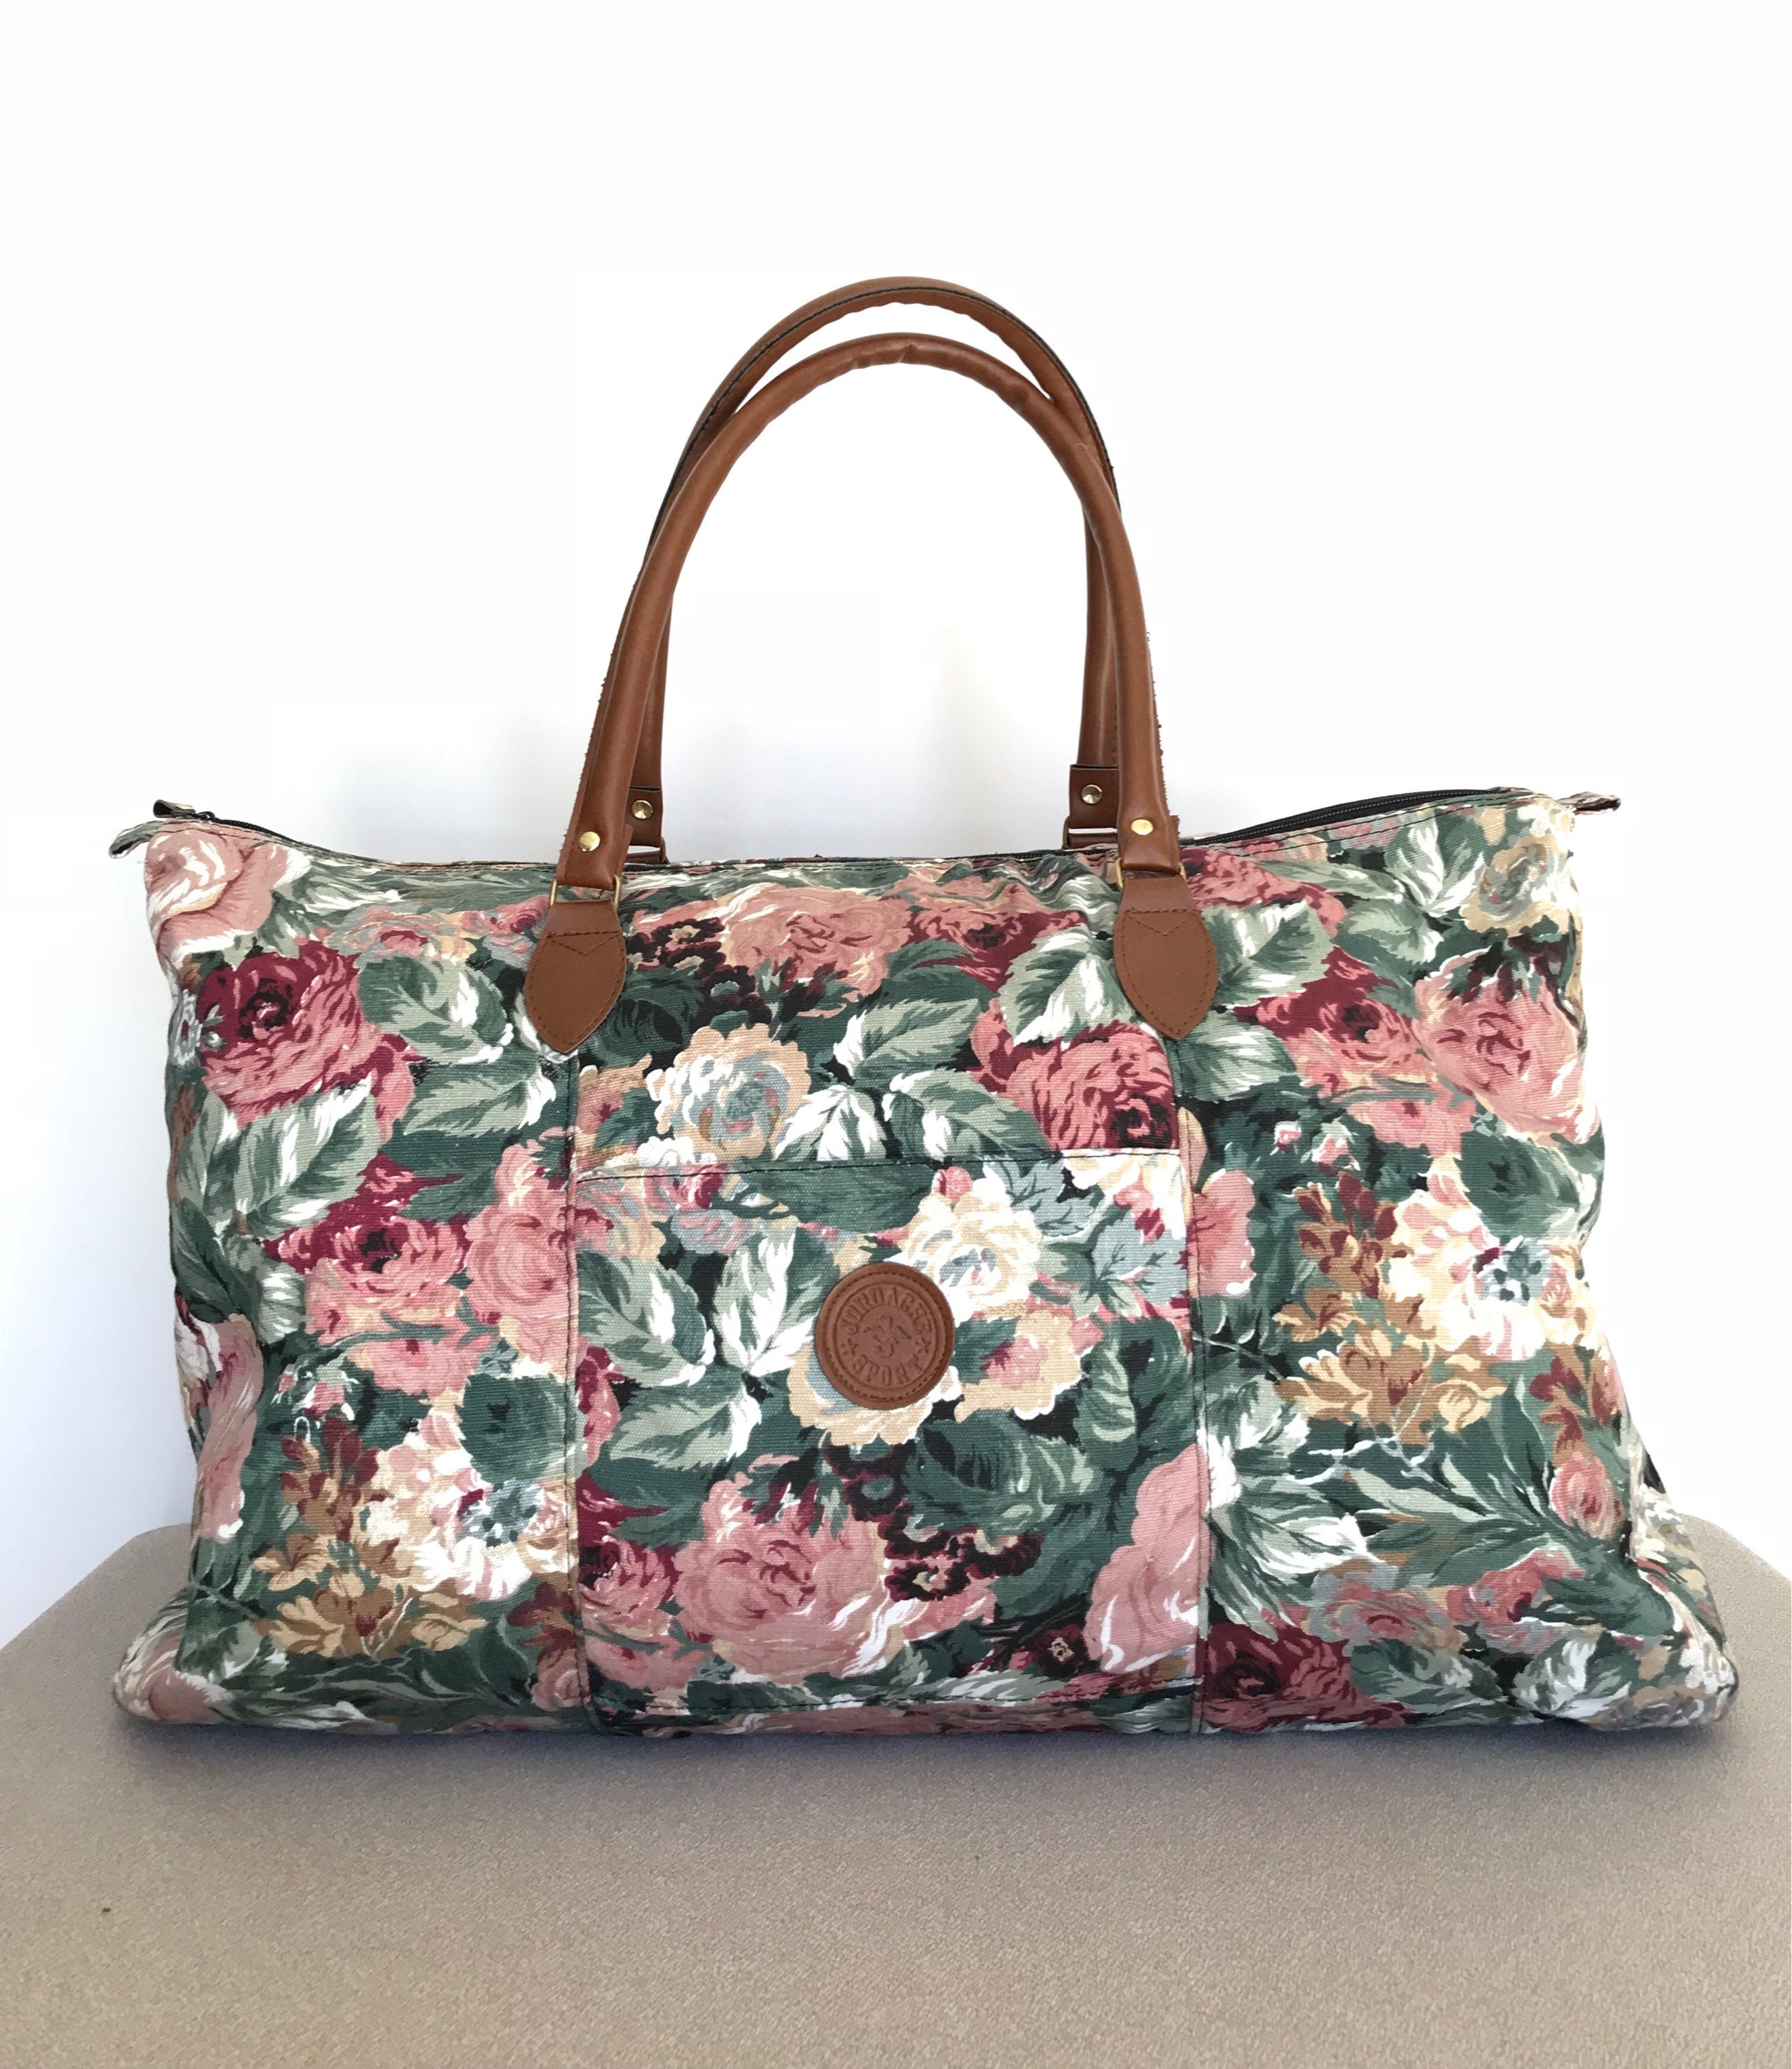 Leather Floral Duffle Bag